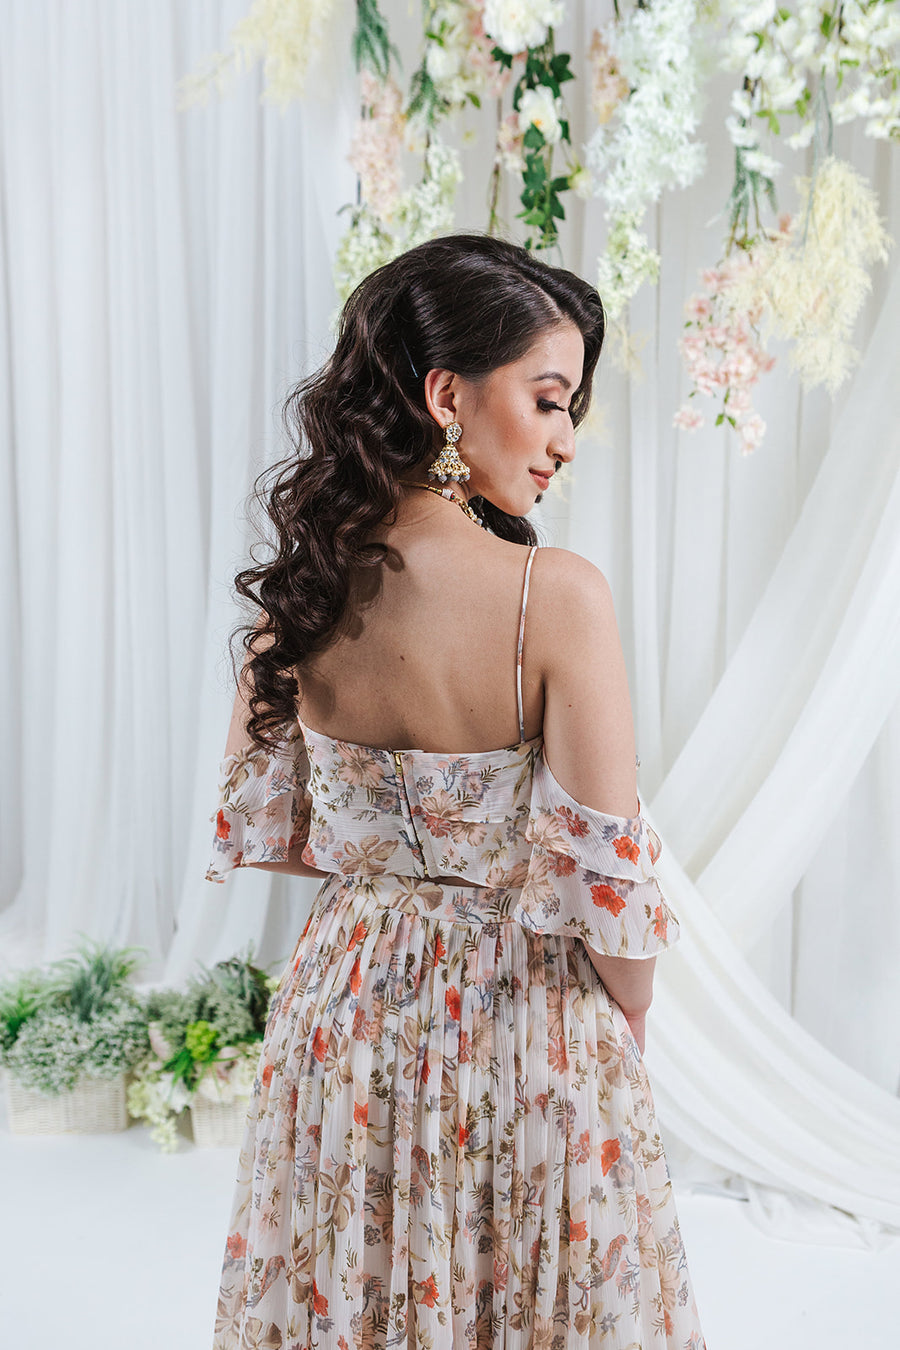 bralette top indian wedding outfit